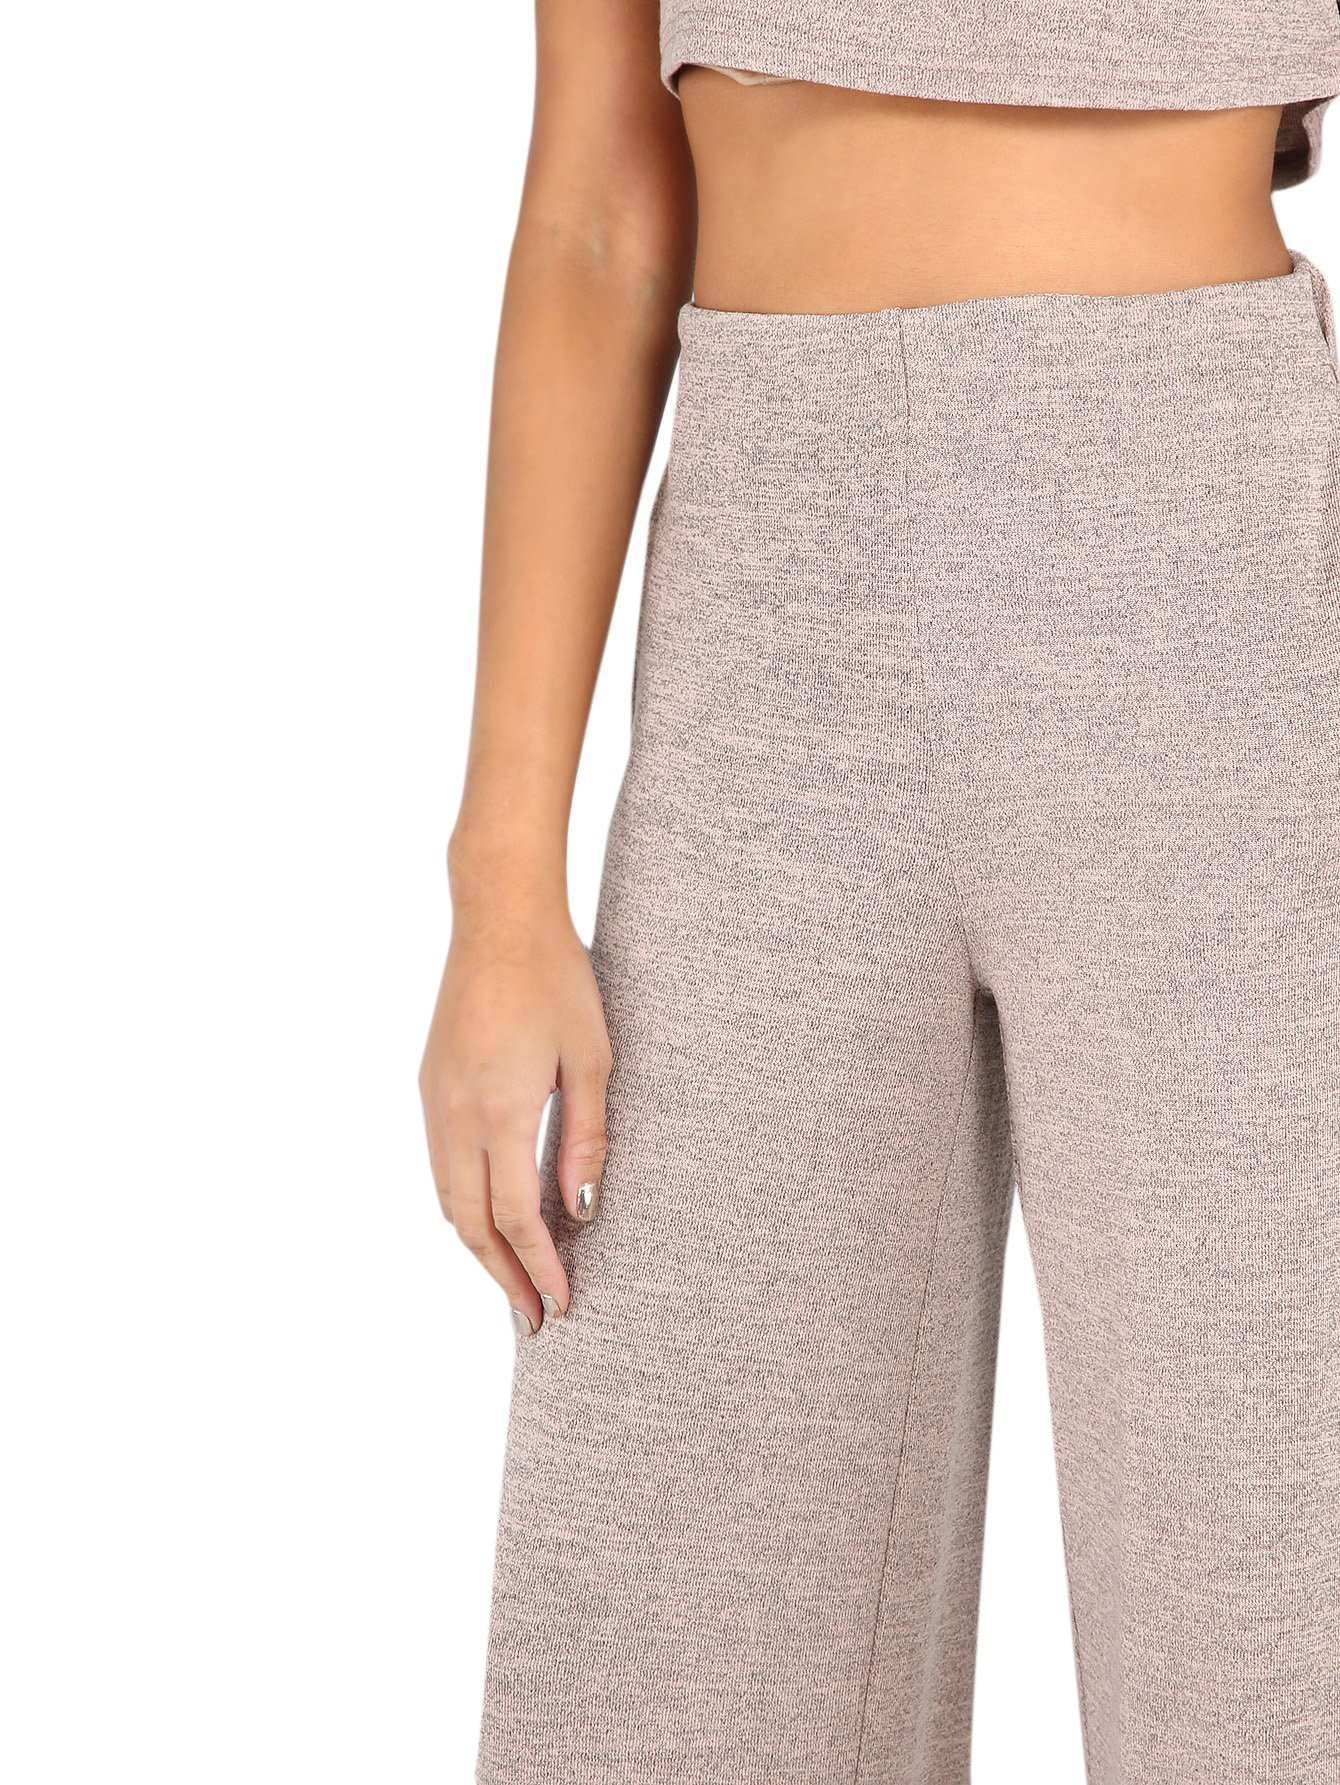 Verdusa Women's Sporty 2 Pieces Sets Loose Crop Top and Wide Leg Pants Blush L by Verdusa (Image #5)